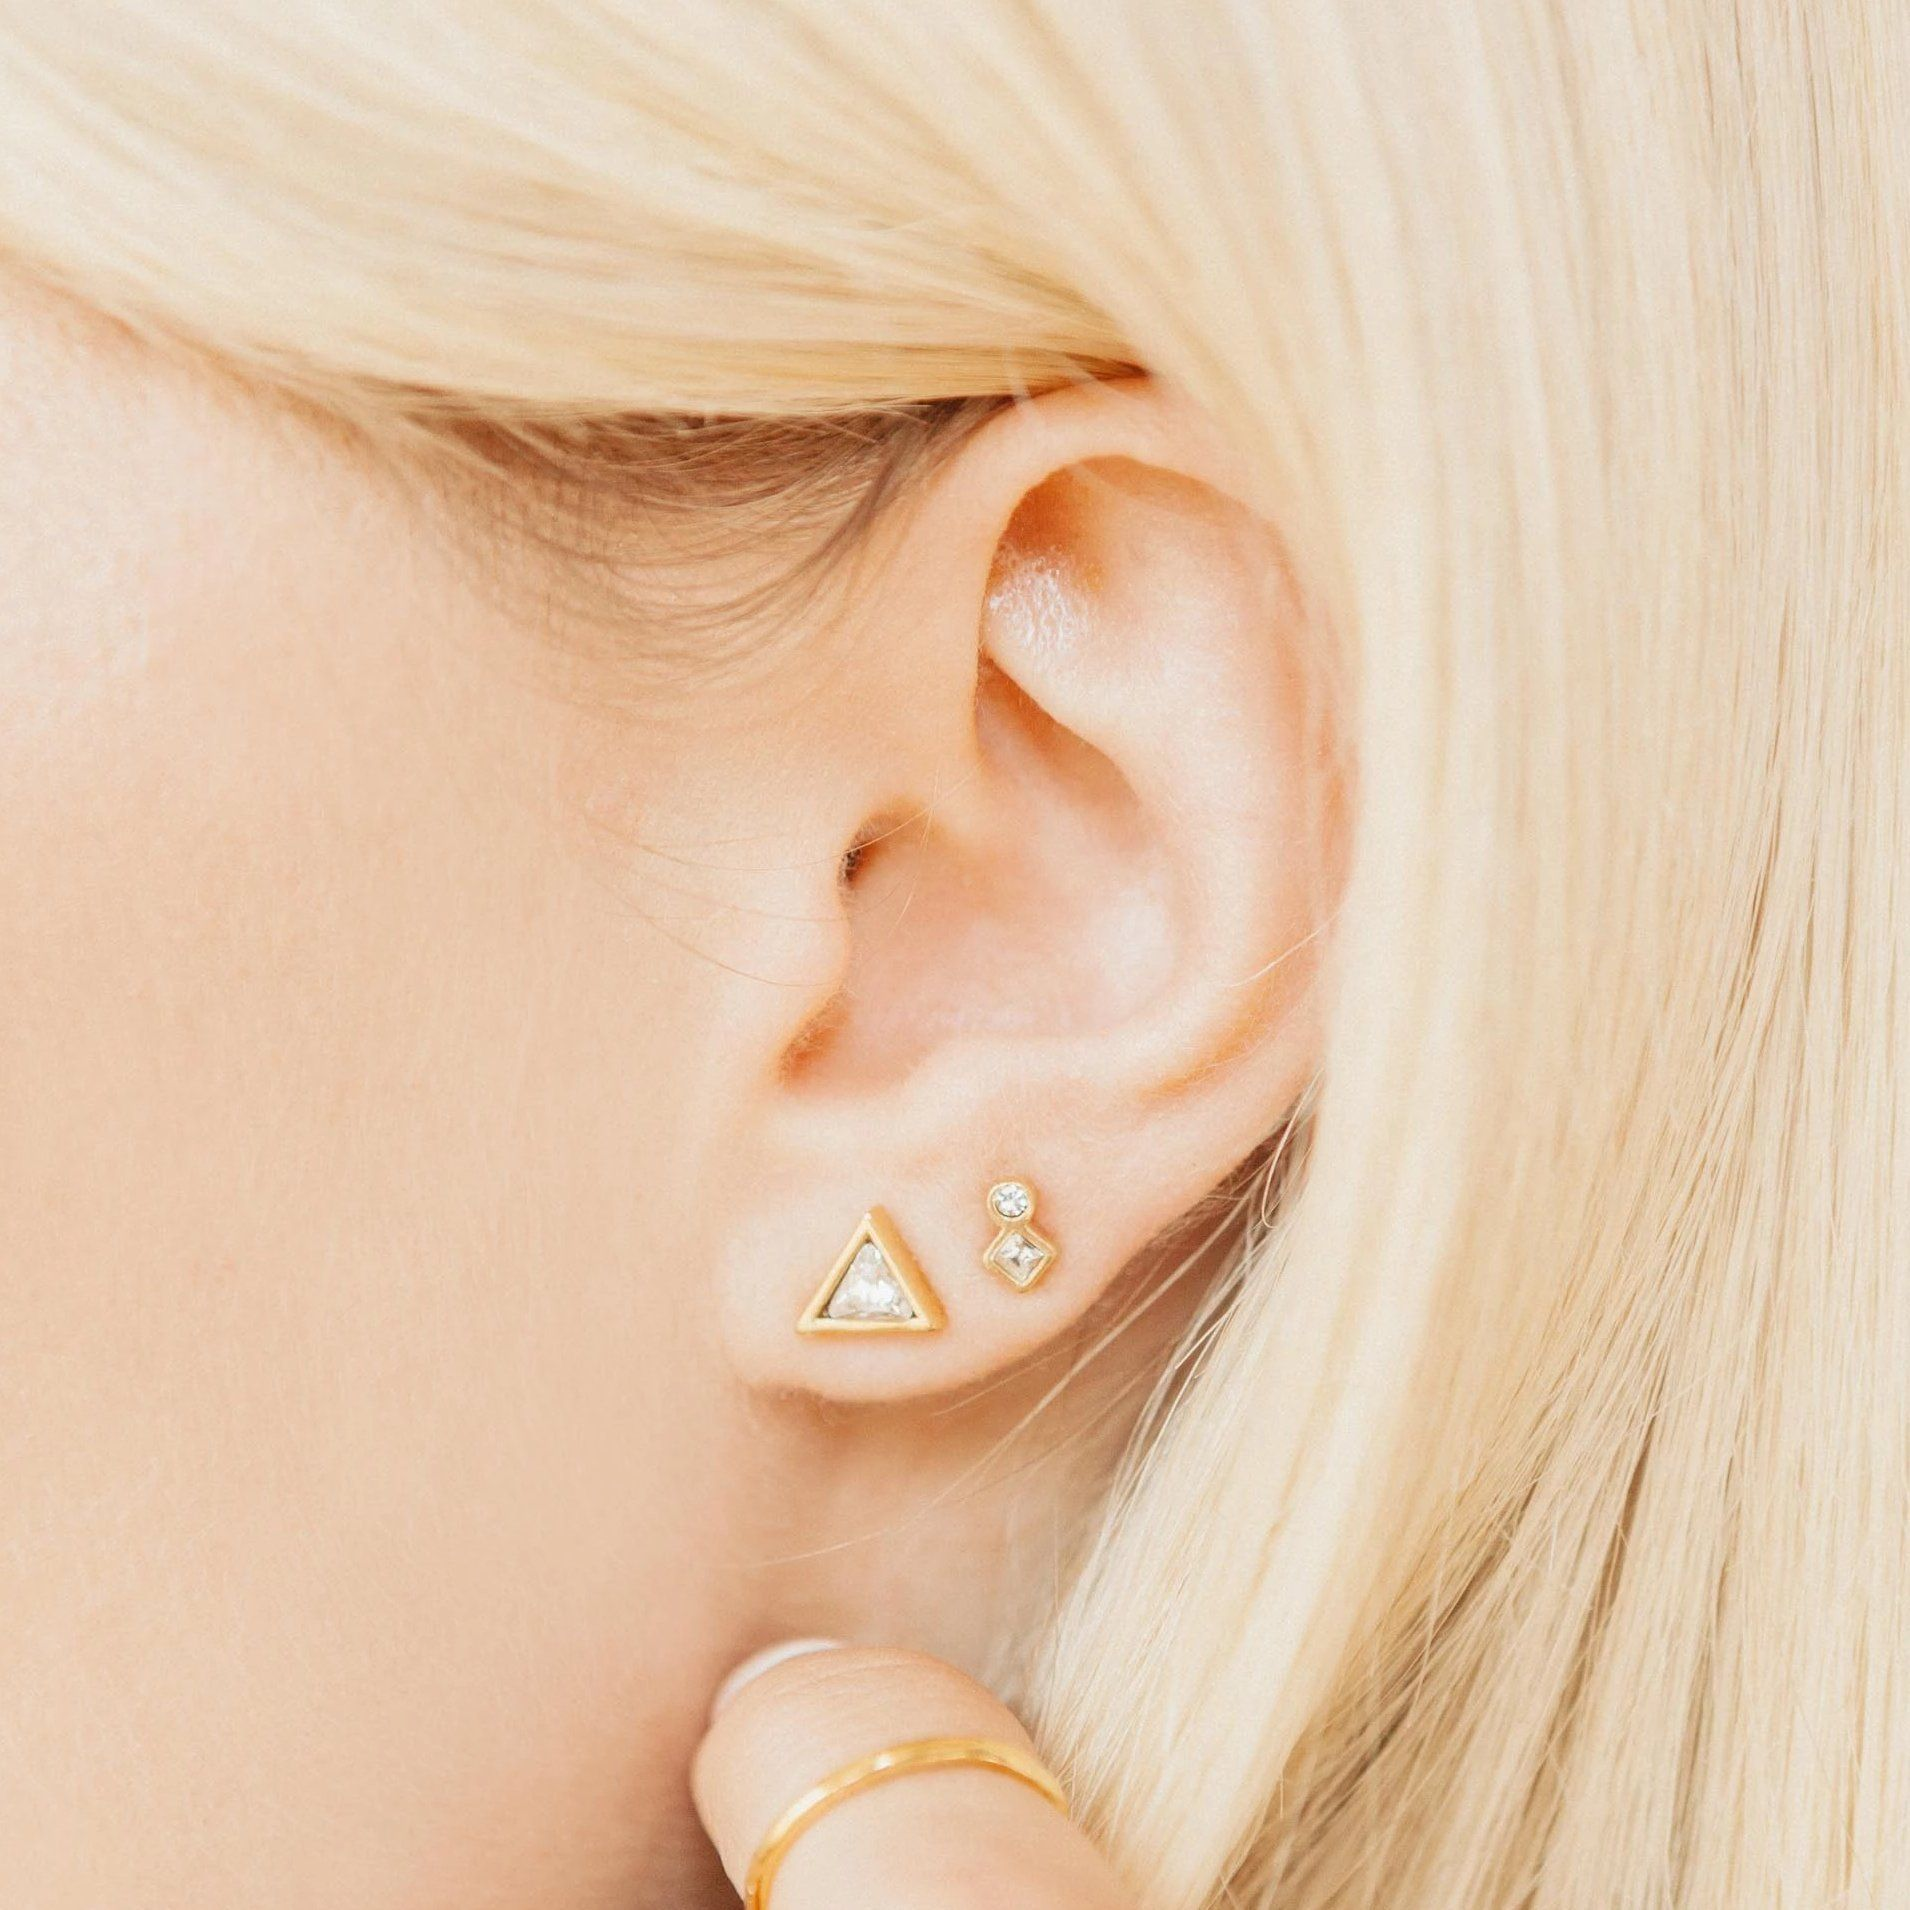 Image of model wearing the gold Geo Mini Studs.